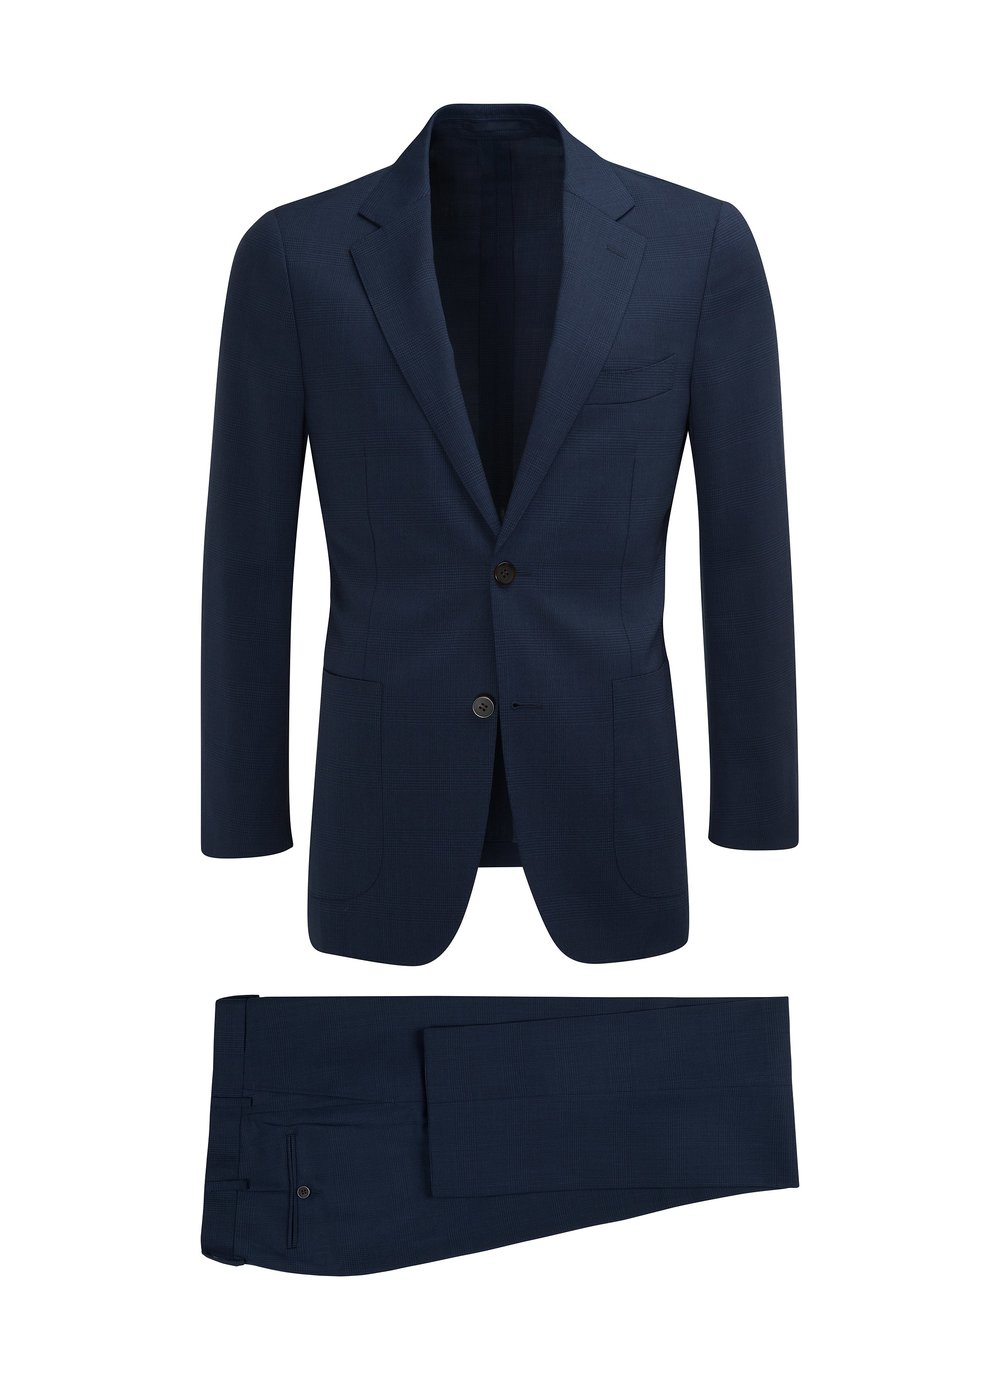 Suits_Blue_Check_Havana_P5111_Suitsupply_Online_Store_5.jpg